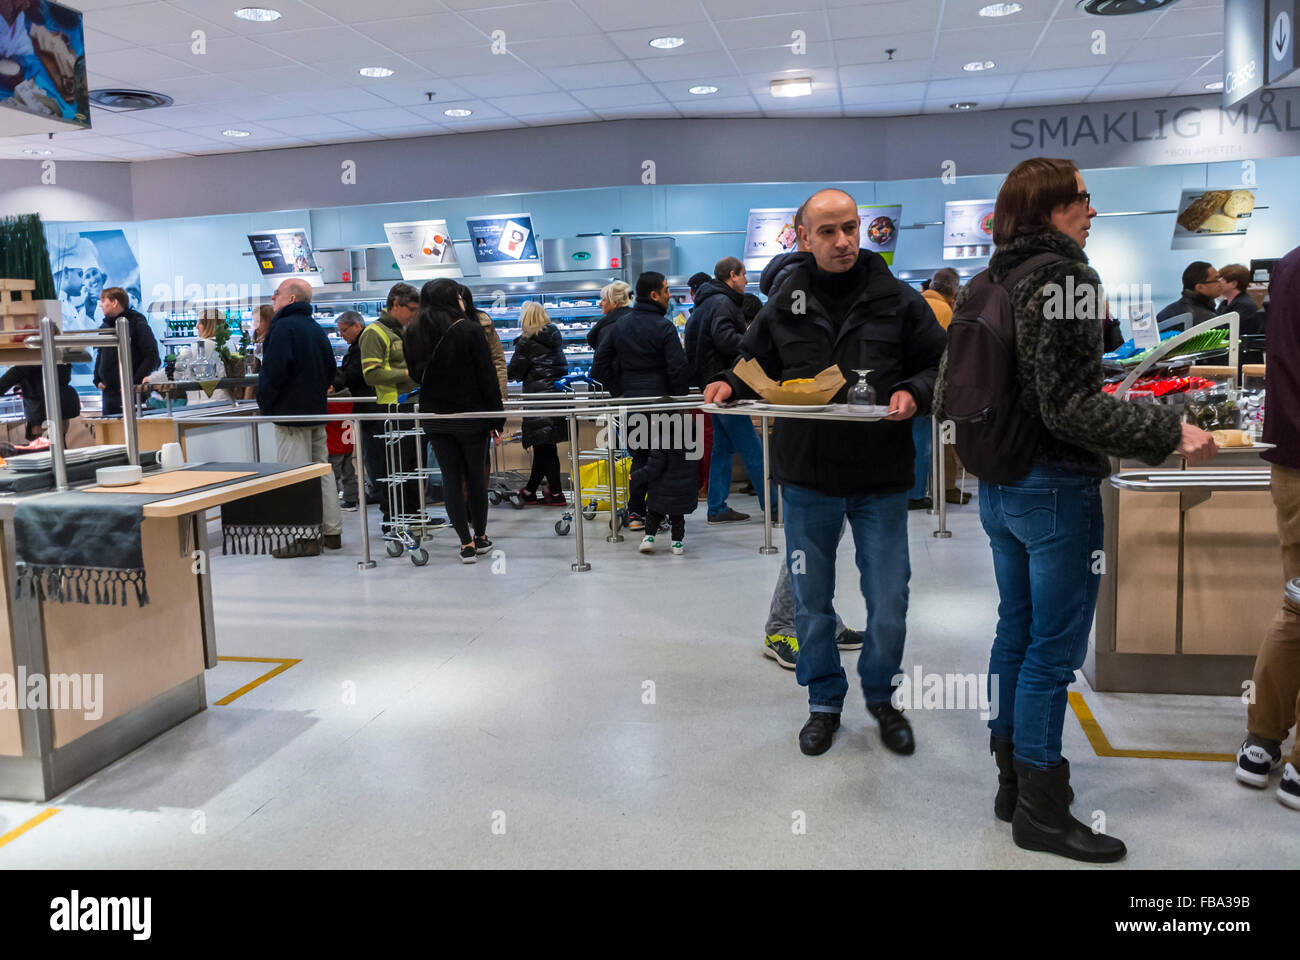 Paris, France, people Shopping in Modern DIY Housewares Store, IKEA, Selecting Food in Self Serve Cafeteria Stock Photo